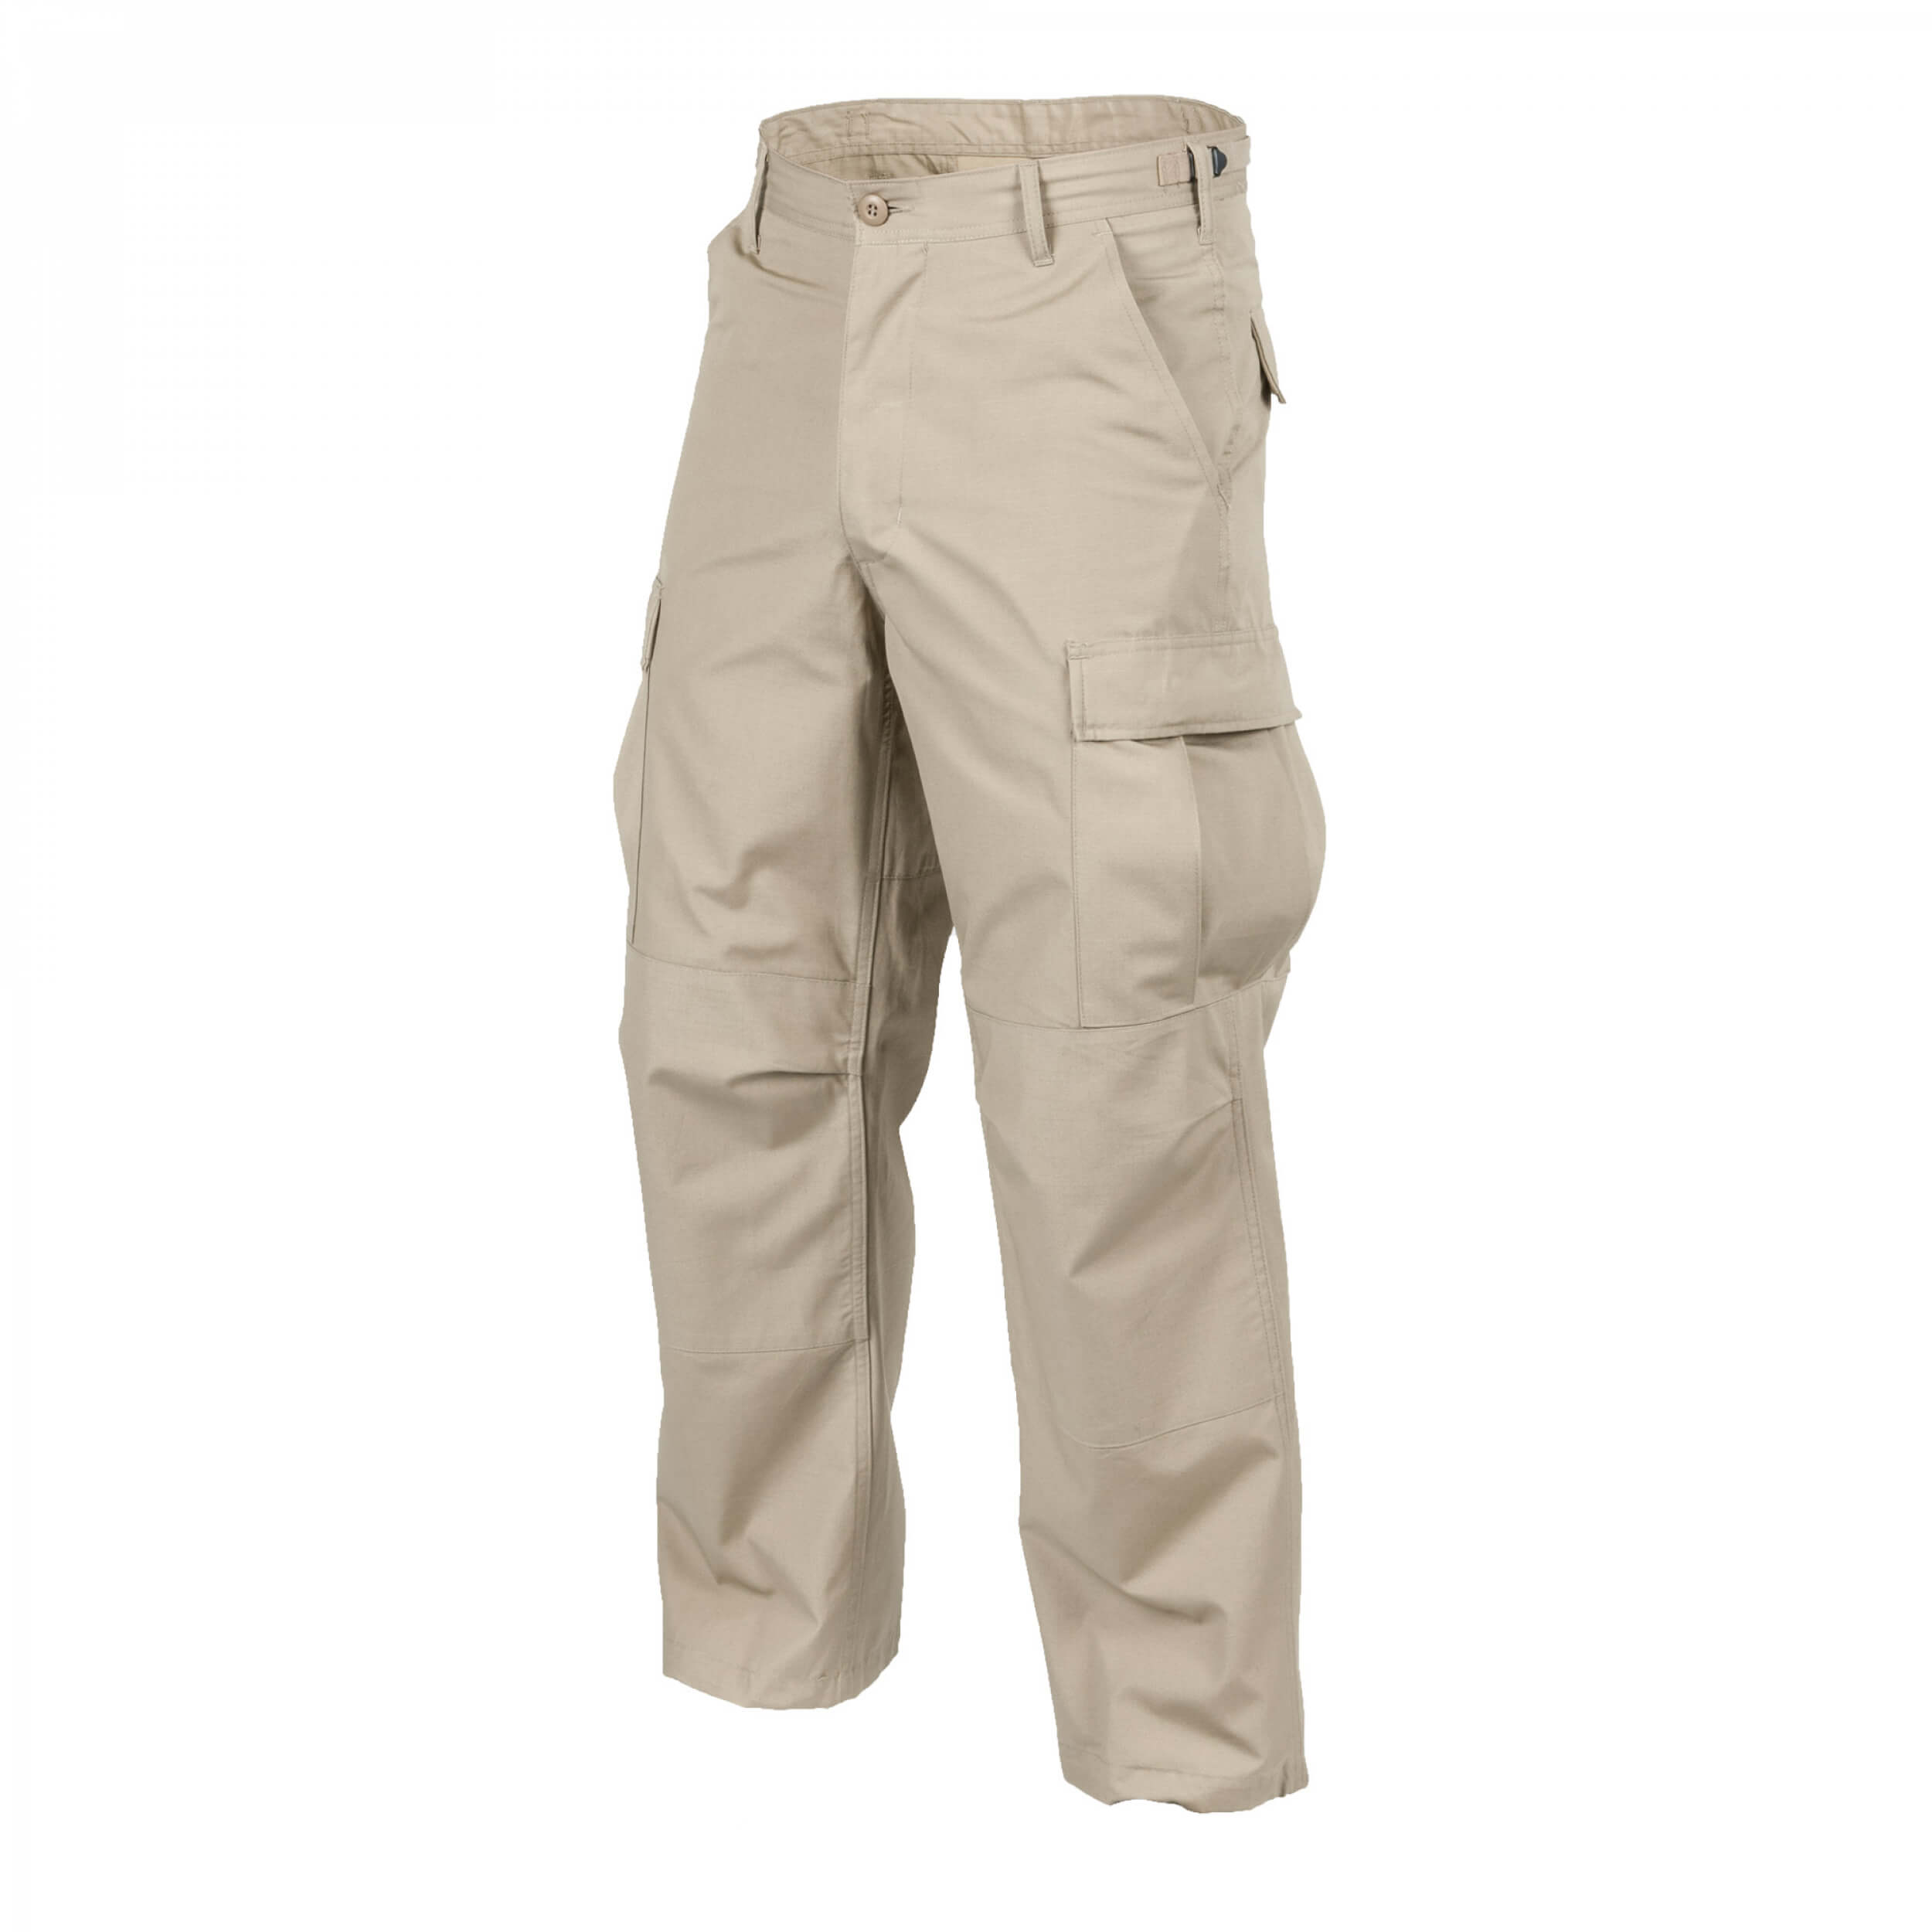 Helikon-Tex BDU Trousers - Cotton Ripstop - Khaki